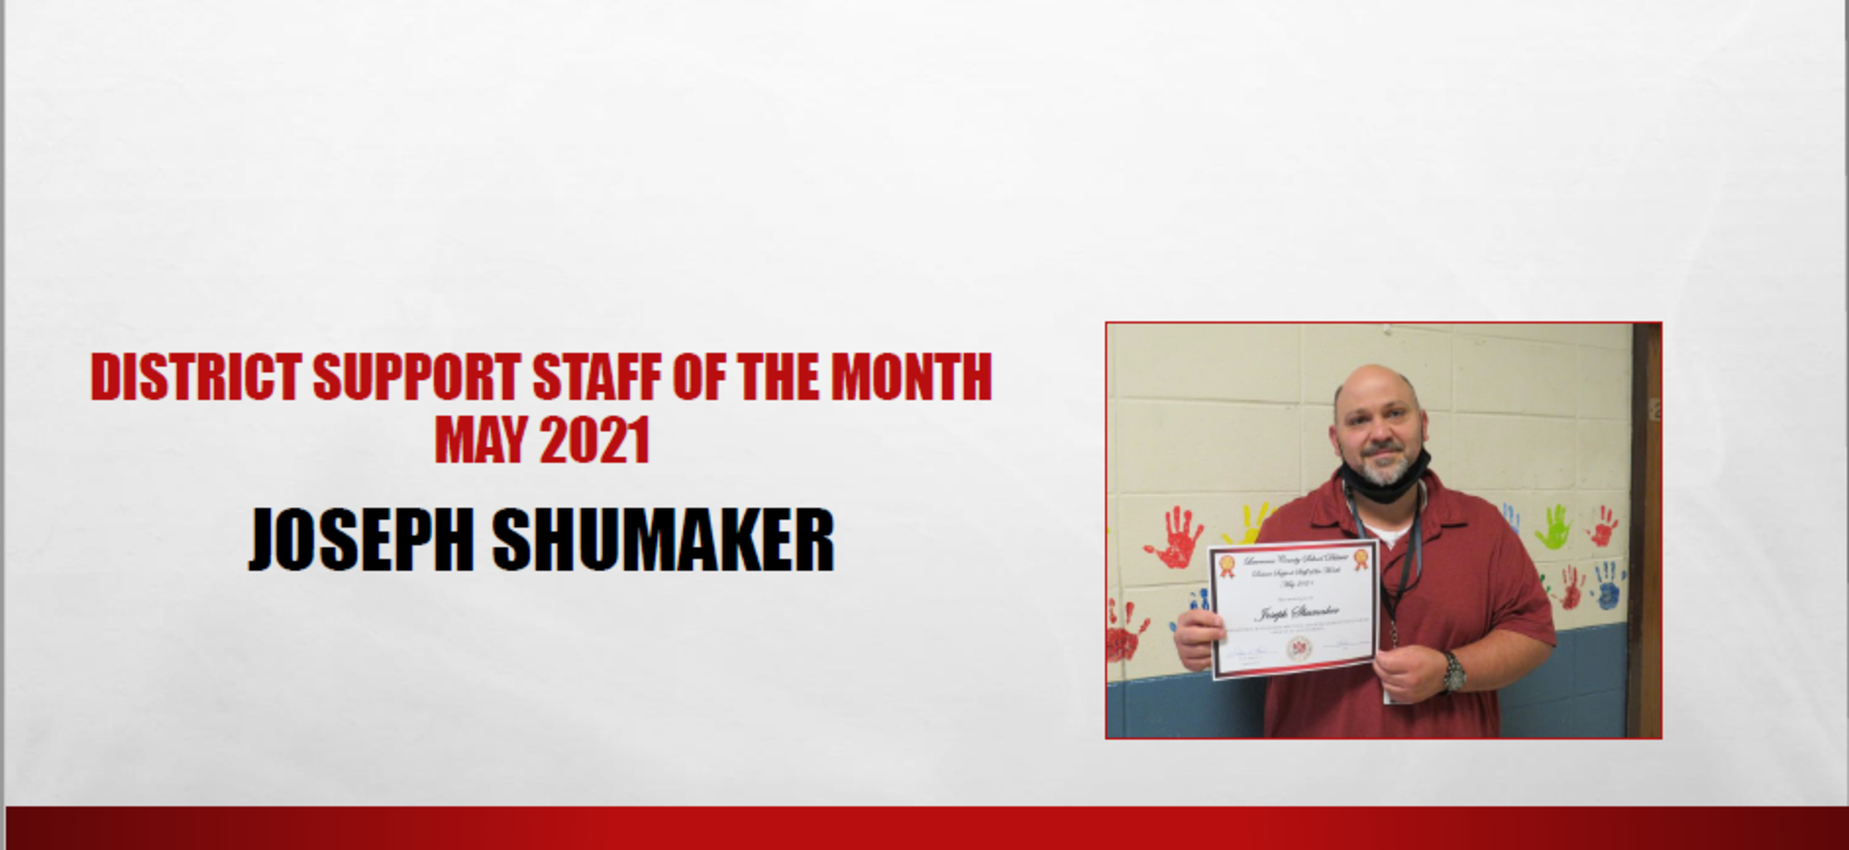 May 2021 District Support Staff of the Month Joseph Shumaker